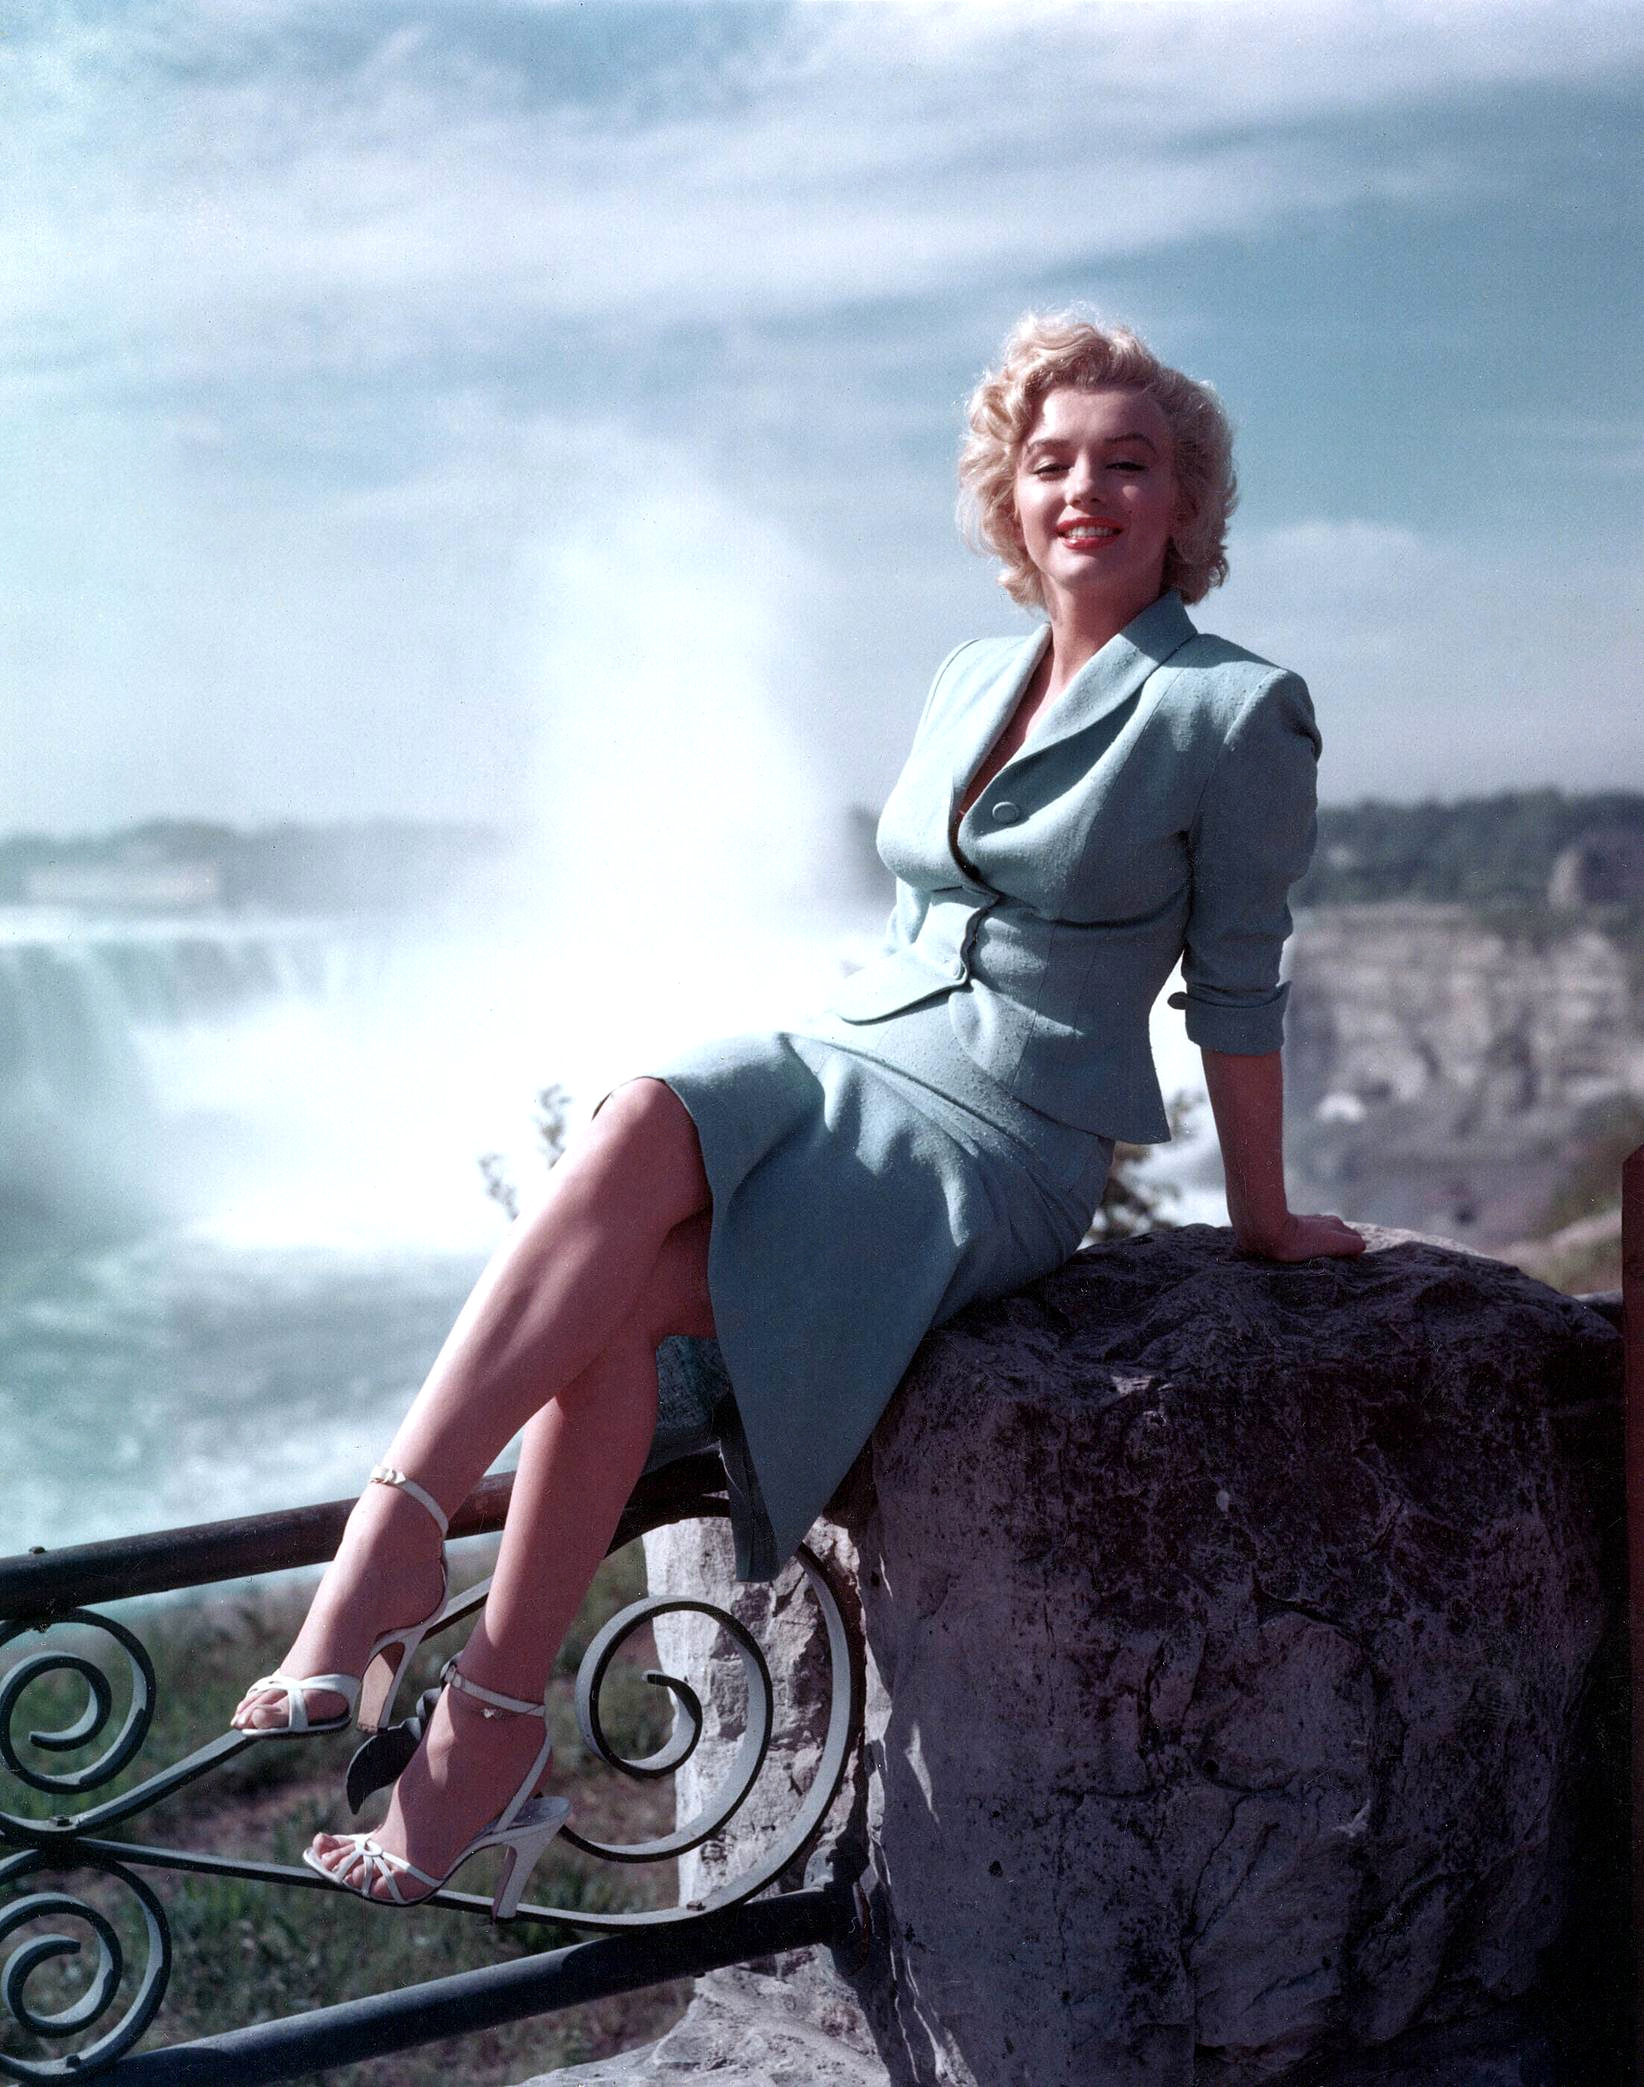 Marilyn Monroe Niagara Marilyn Monroe Photo 30622285 Fanpop